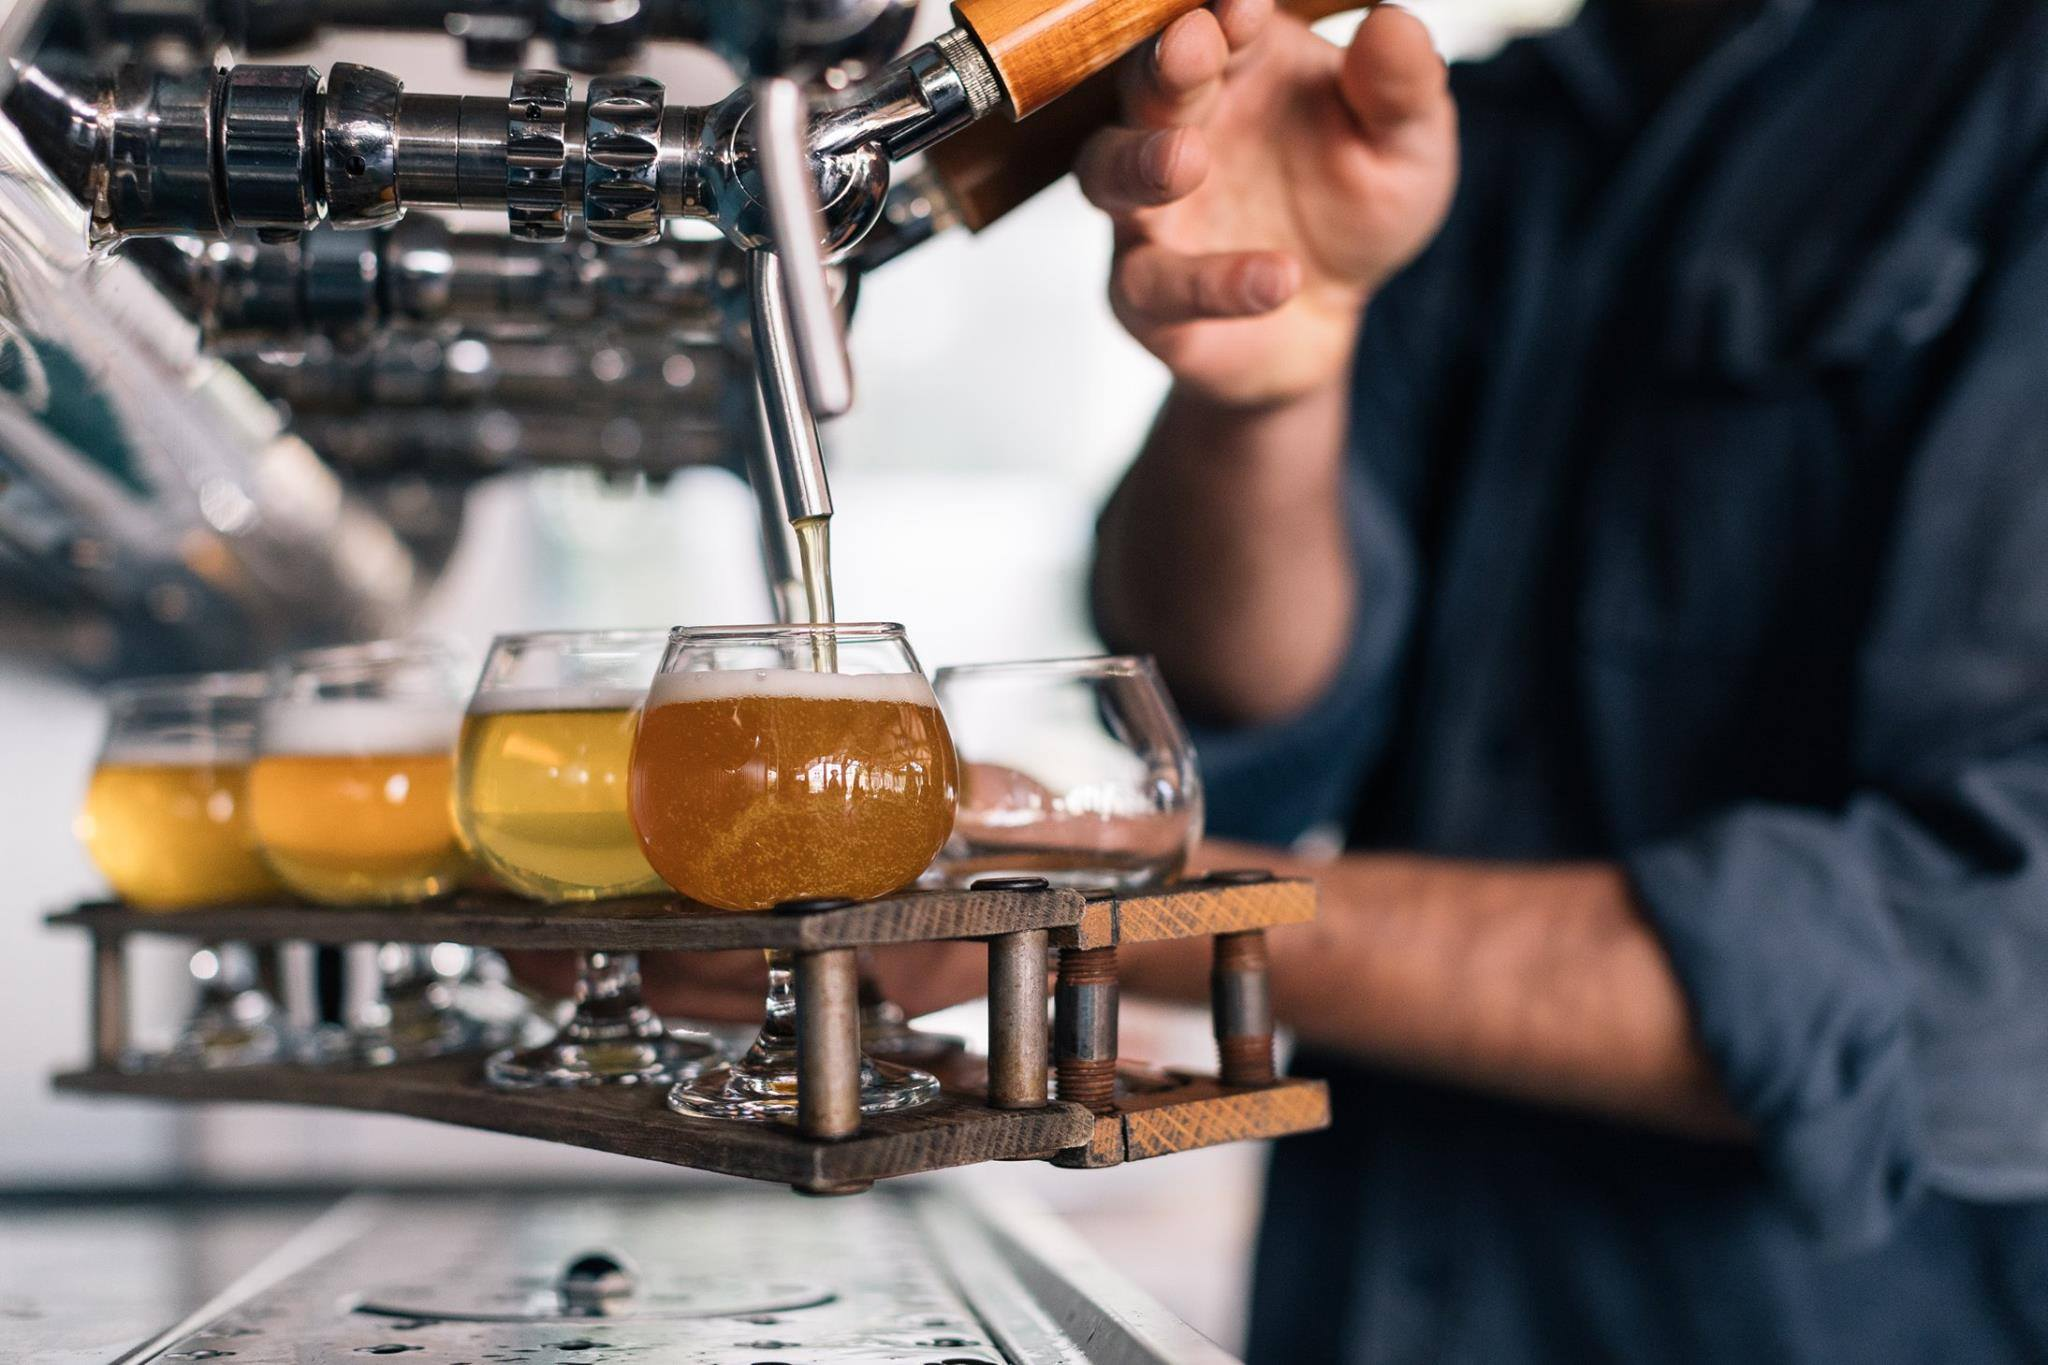 flights of Allagash beer being poured